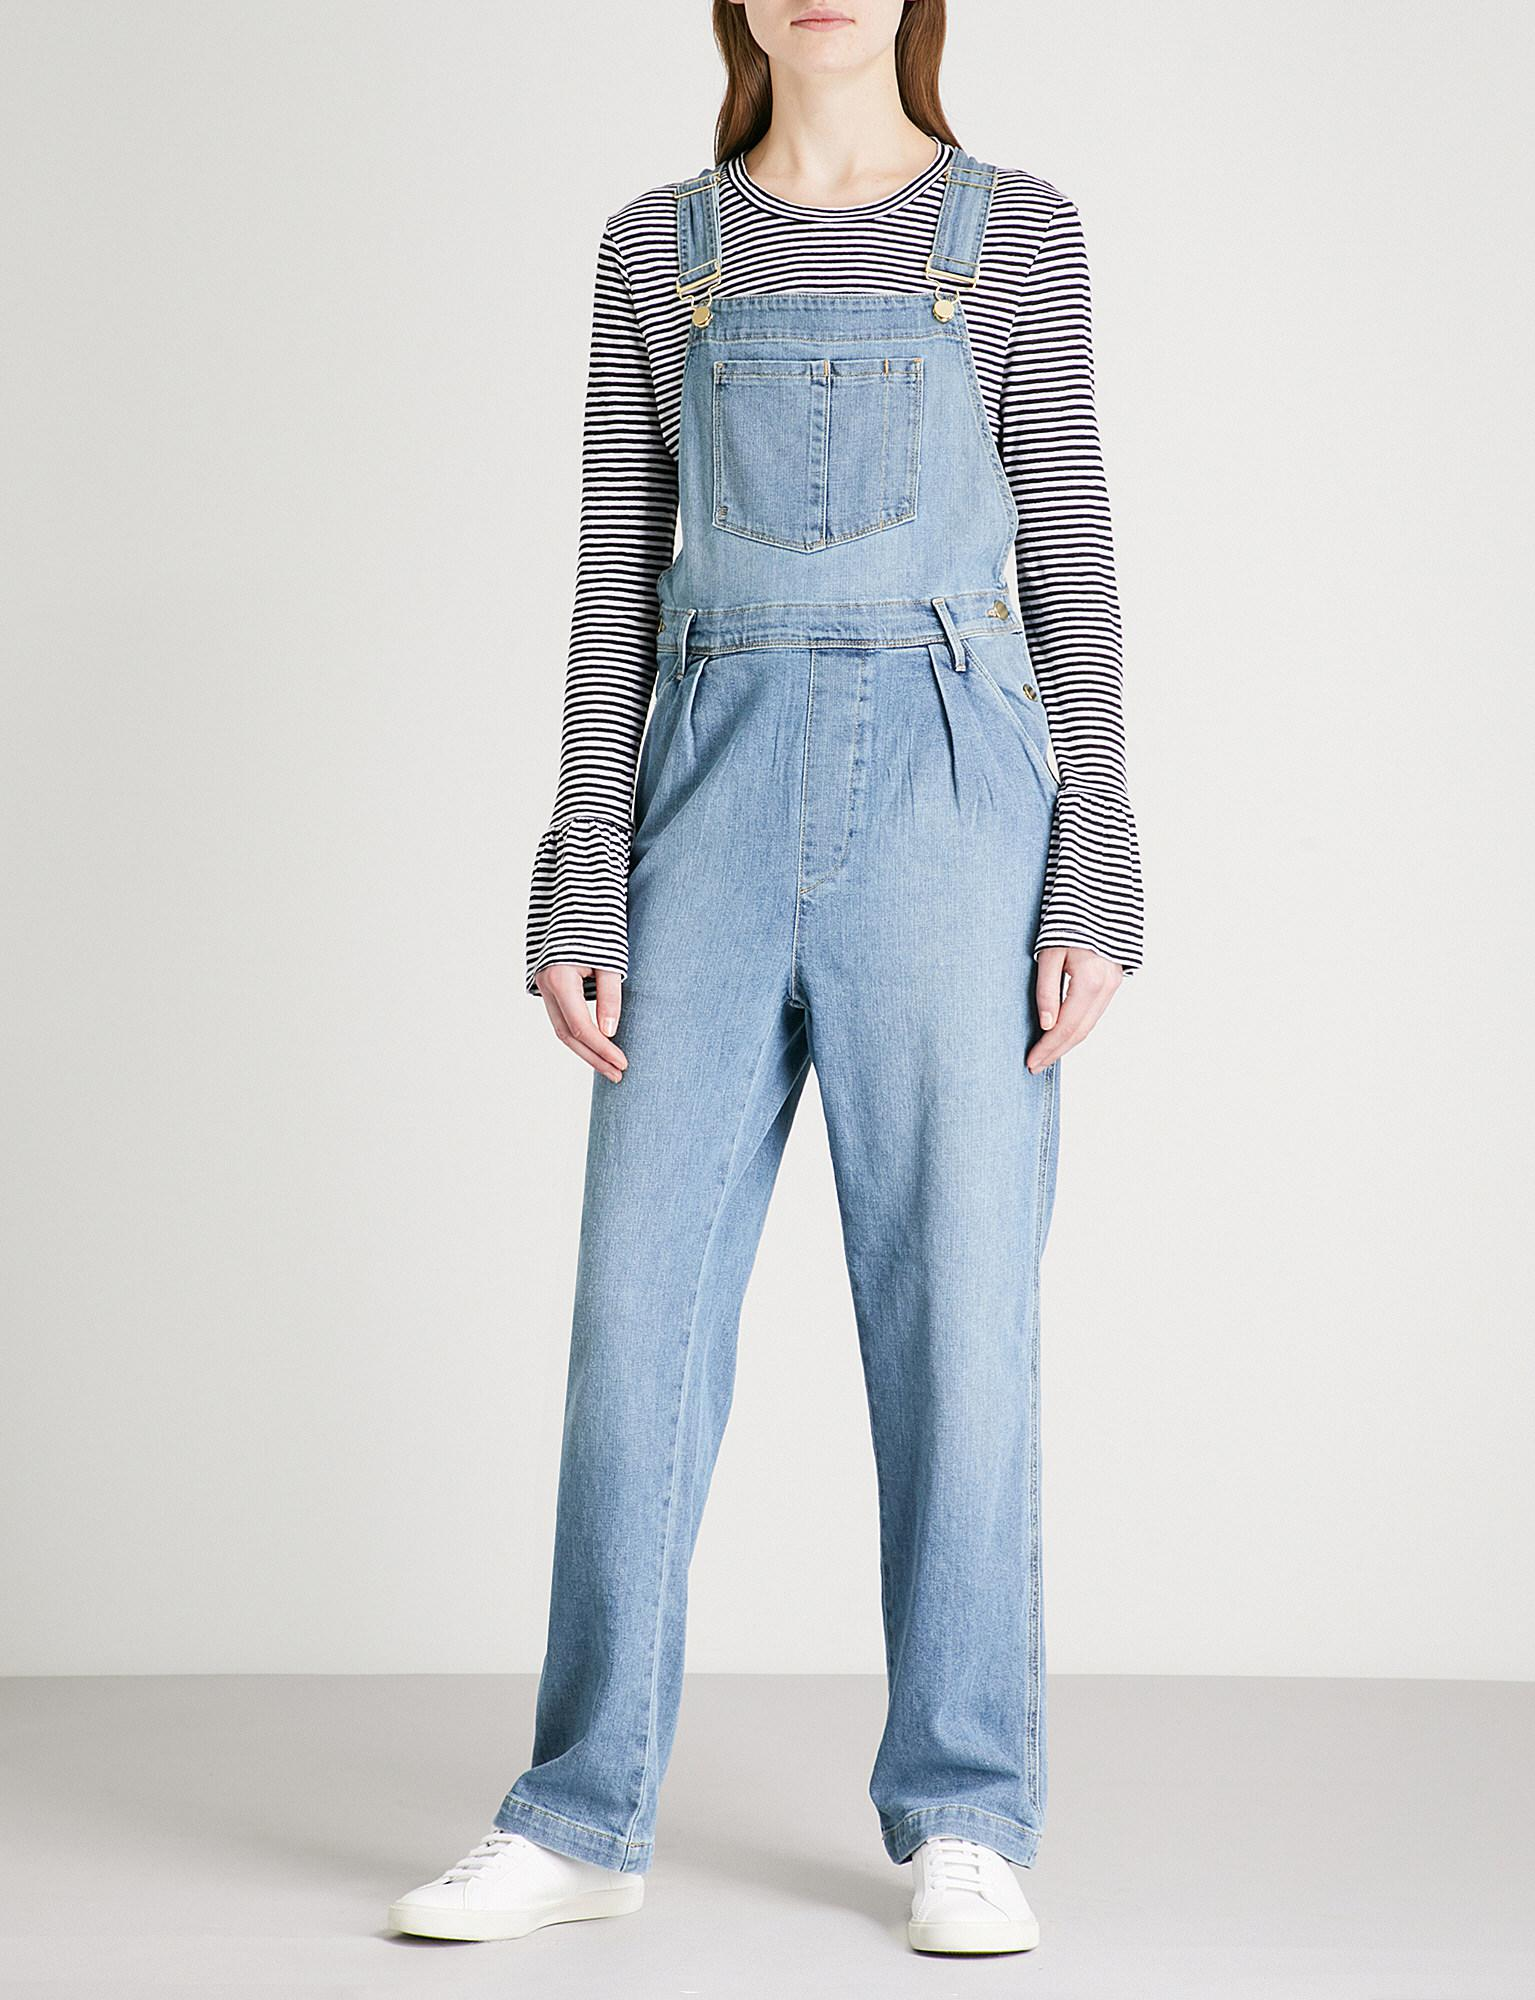 Lyst - Frame Le Baggy Stretch-denim Dungarees in Blue